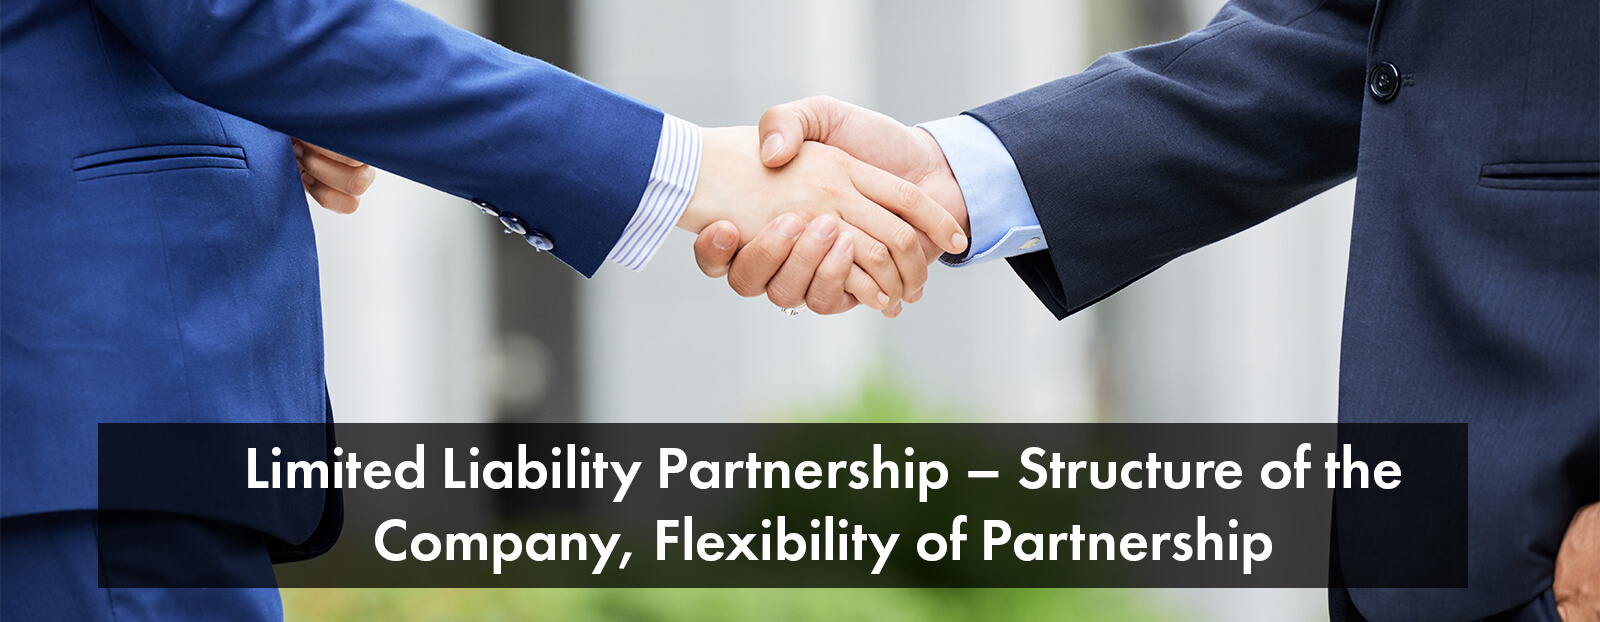 Limited Liability Partnership – Structure of the Company, Flexibility of Partnership